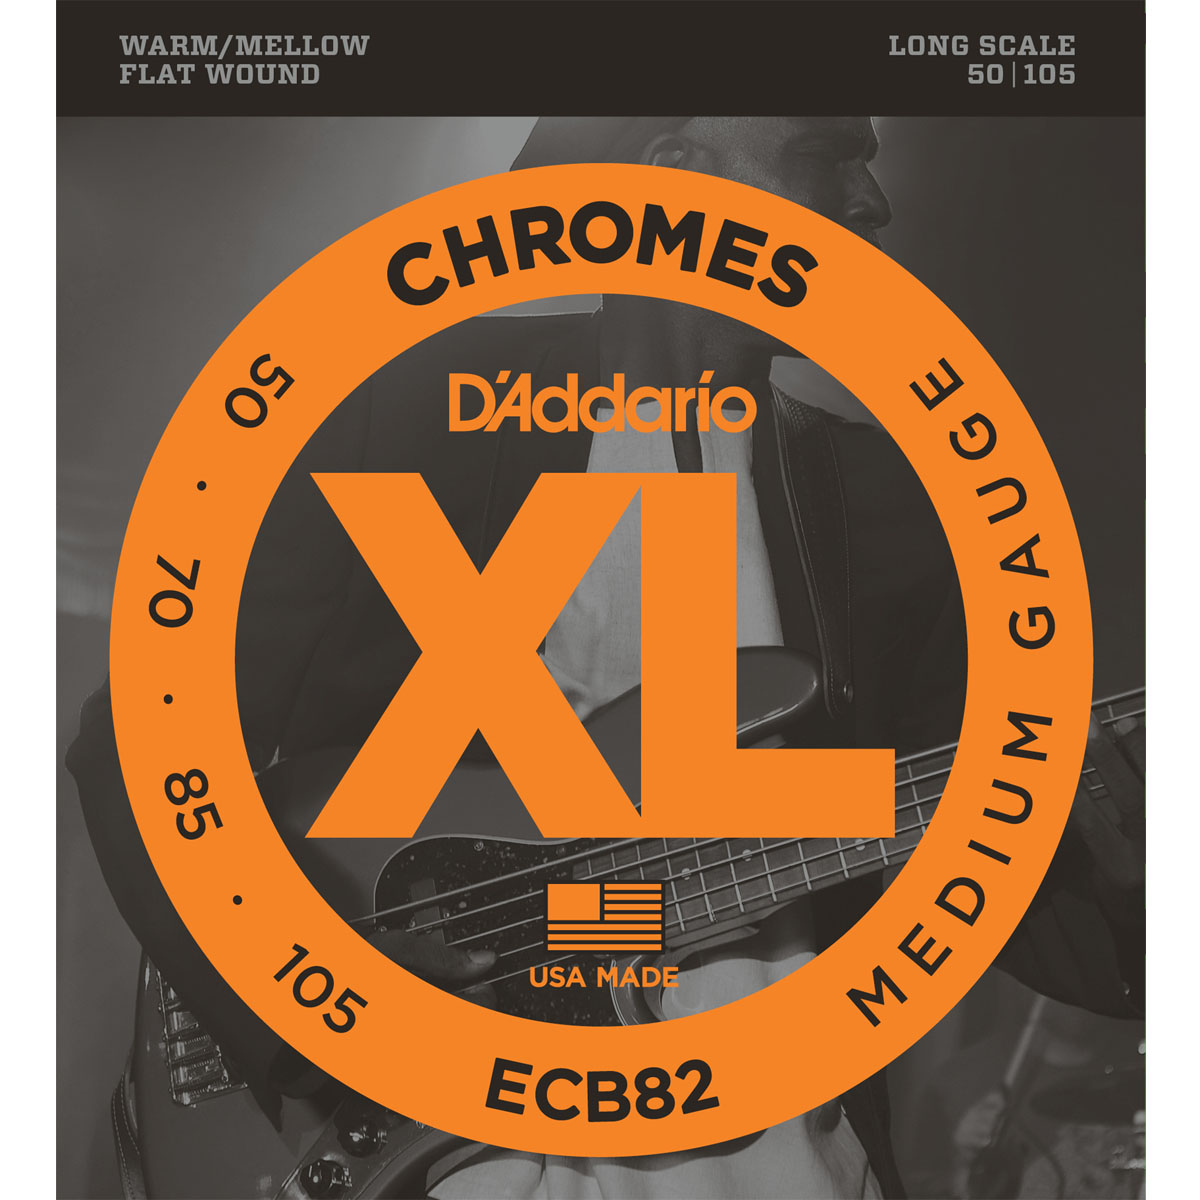 D'Addario ECB82 Flatwound Bass Guitar Strings